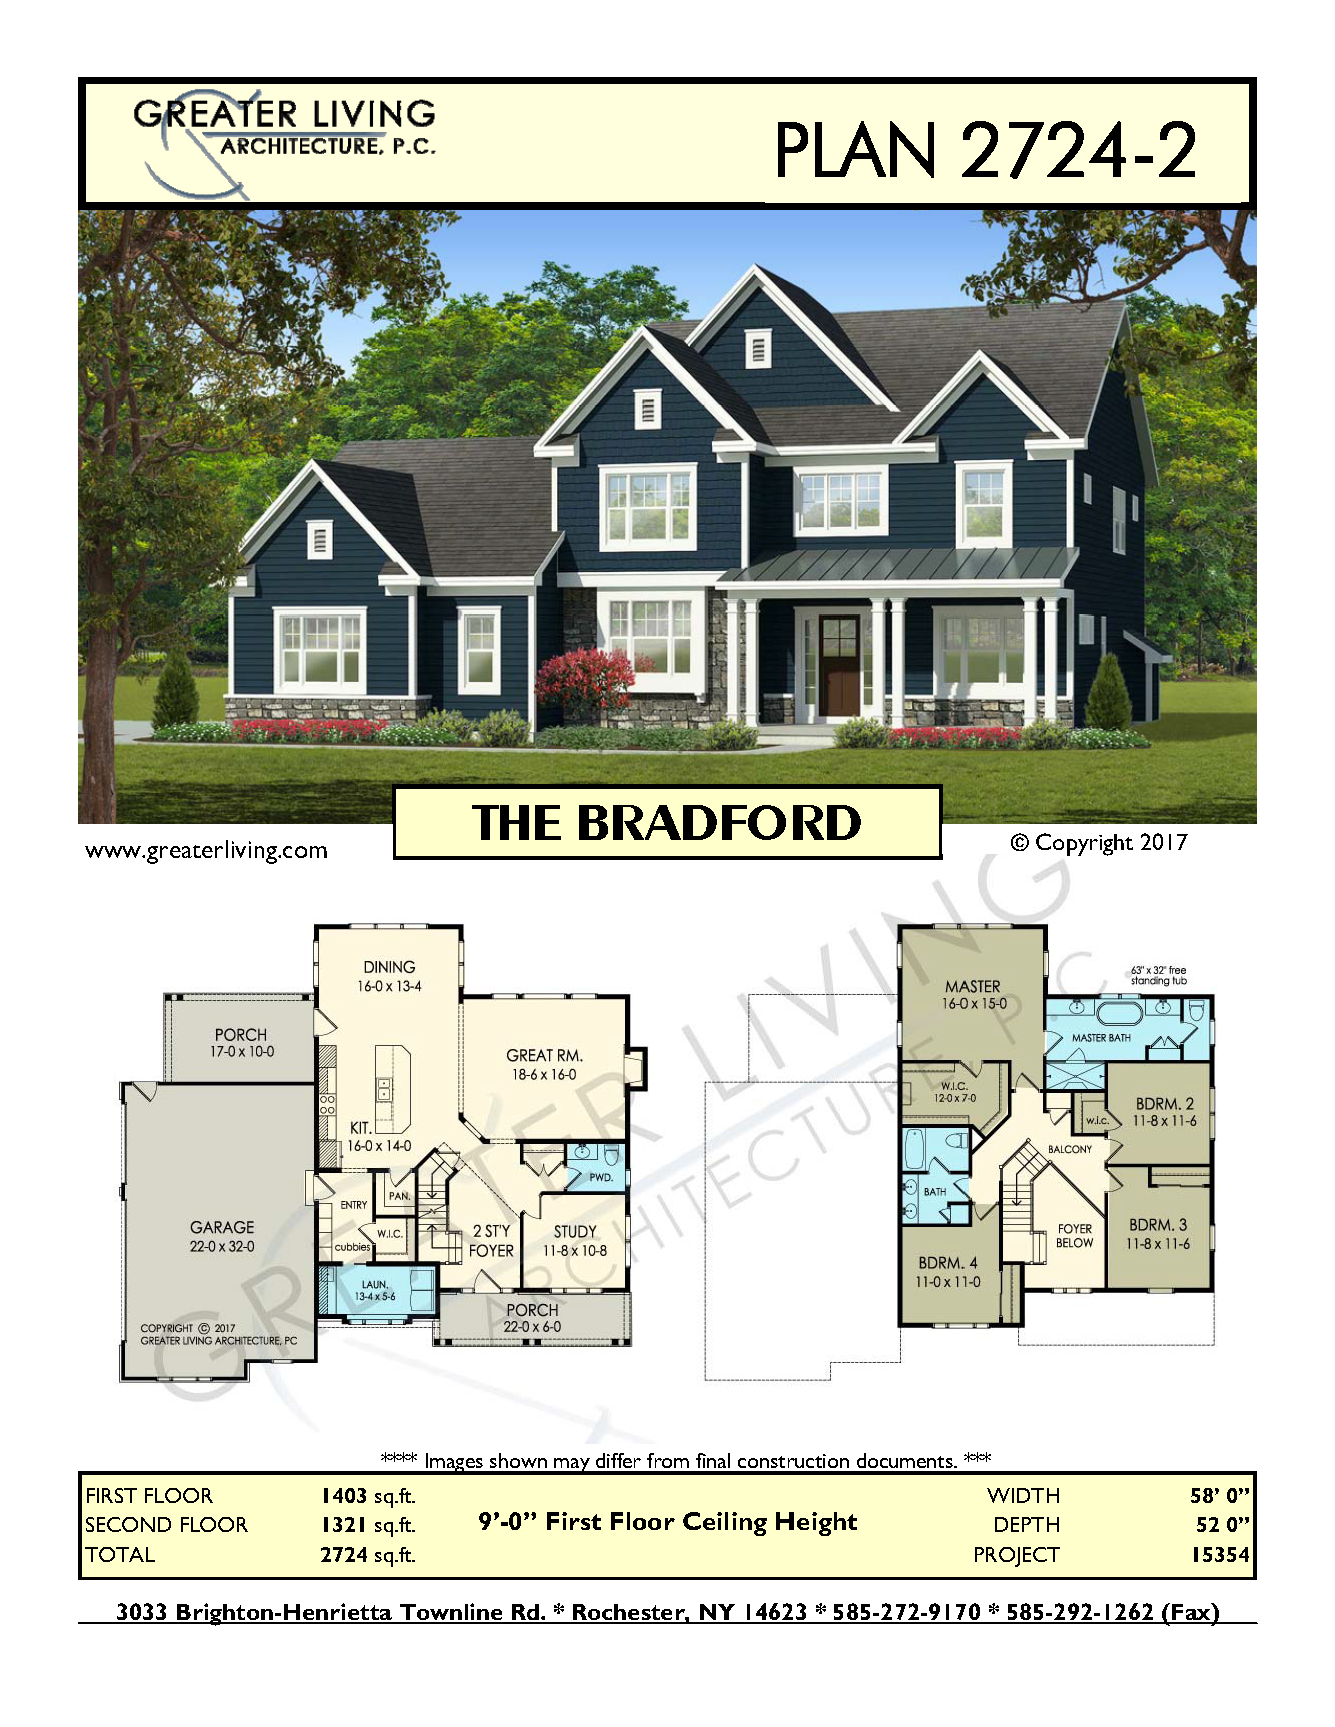 Two Storey Homes Perth: Plan 2724-2: THE BRADFORD- Two Story House Plan